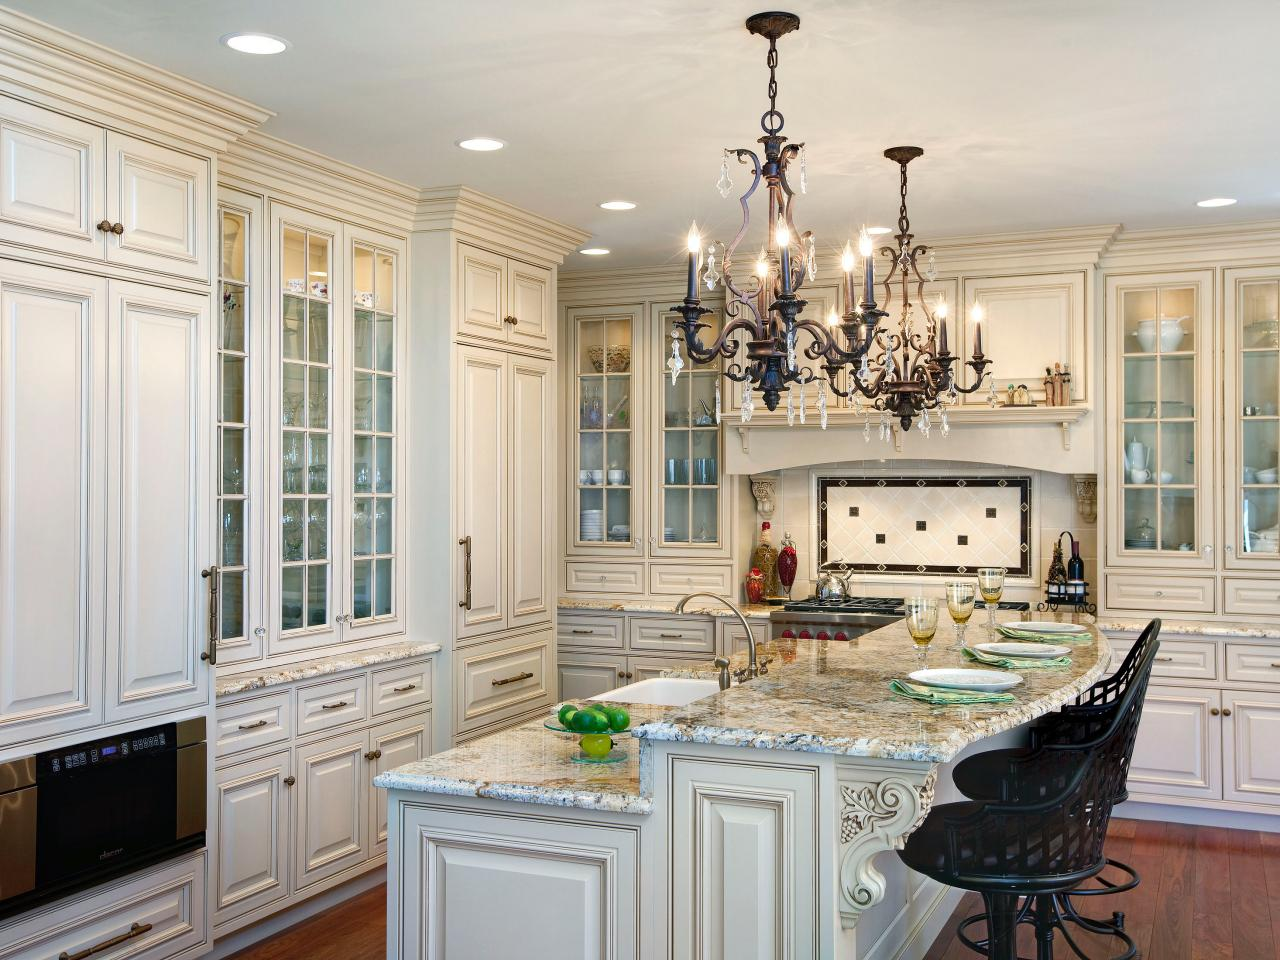 Kitchen lighting styles and trends kitchen designs choose kitchen layouts remodeling - Kitchen styles and designs ...